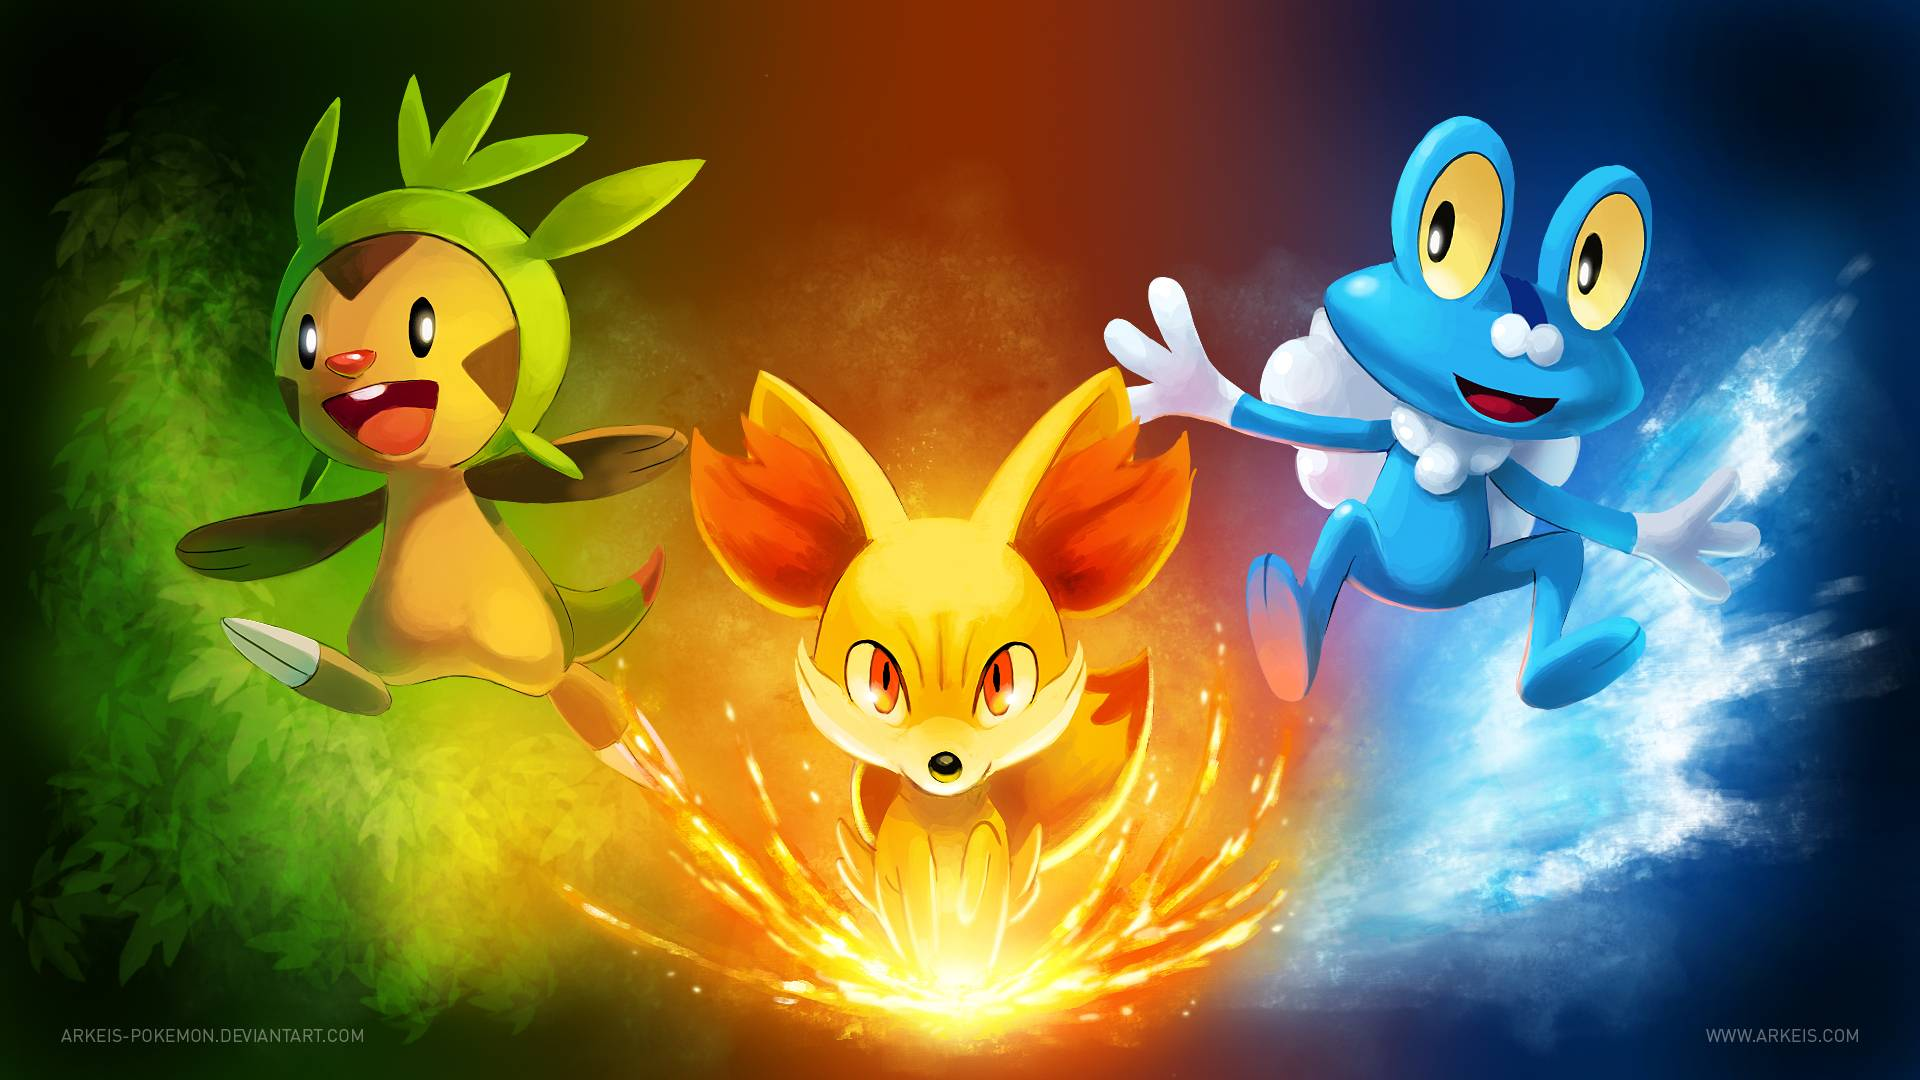 pokemon wallpaper in hd-#34